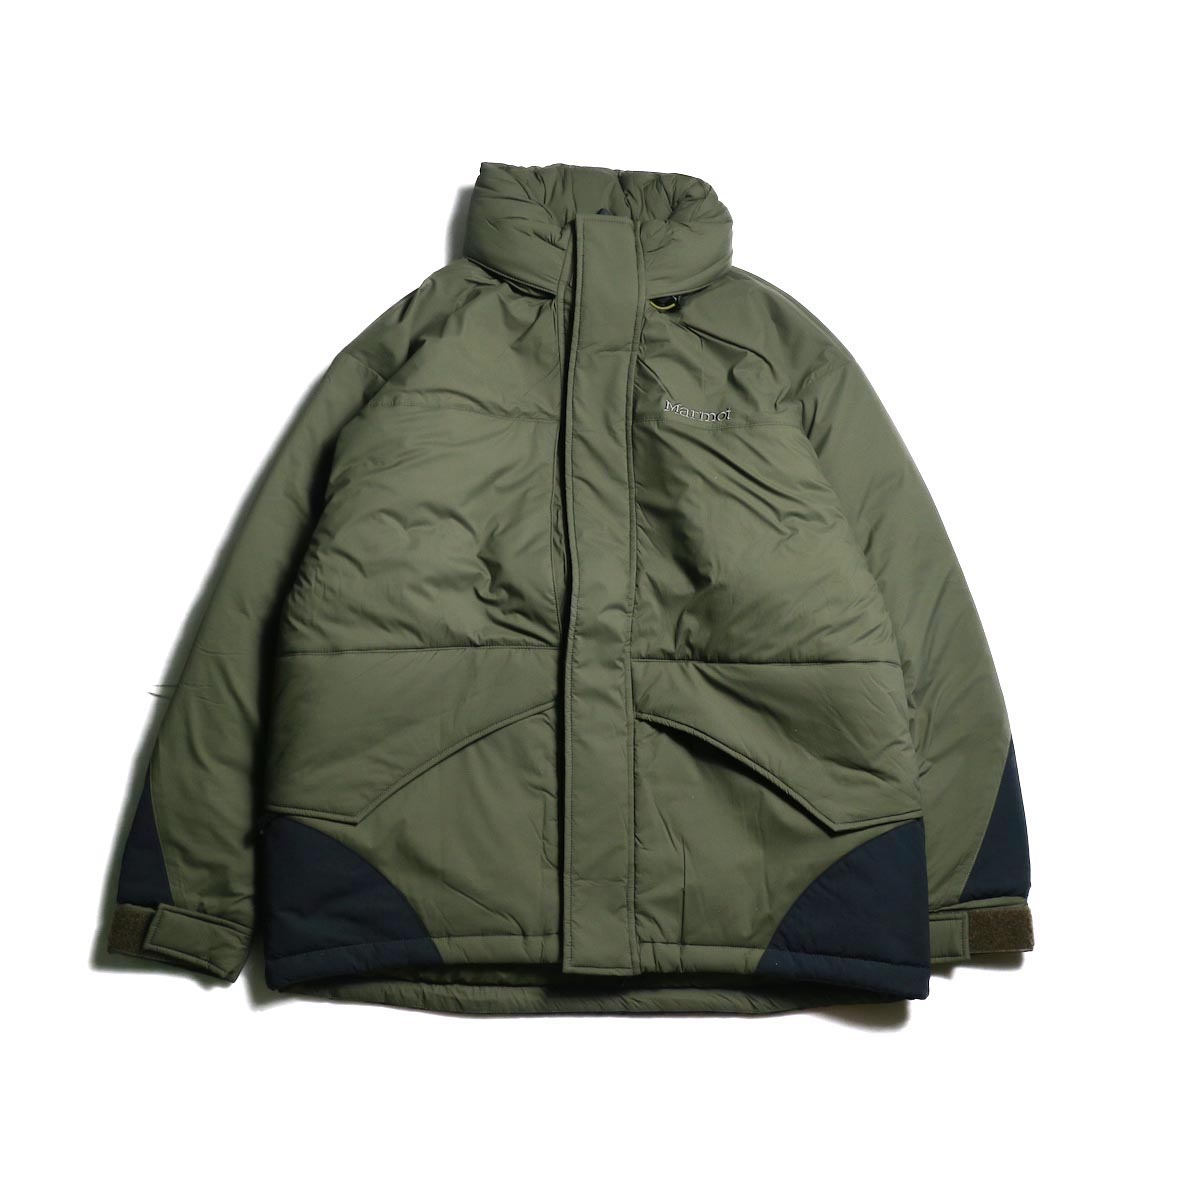 Marmot Histric Collection / Randonnee Loft Jacket (Dk.Olive x Black)